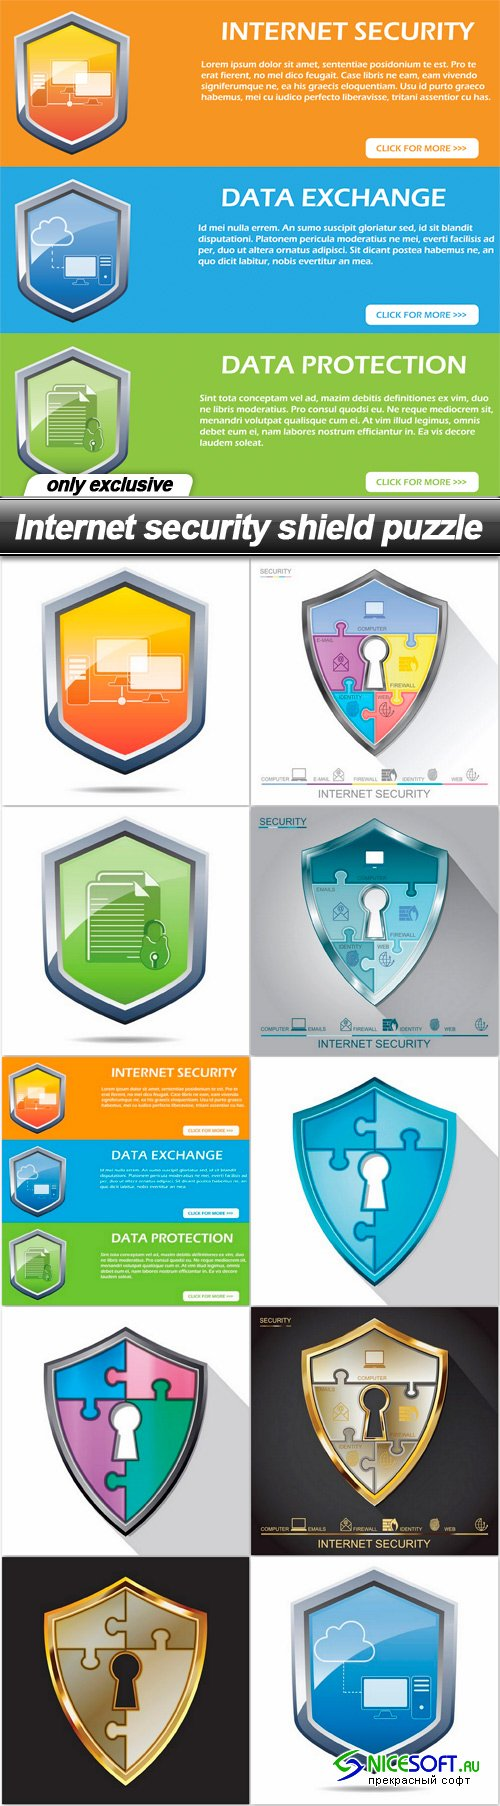 Internet security shield puzzle